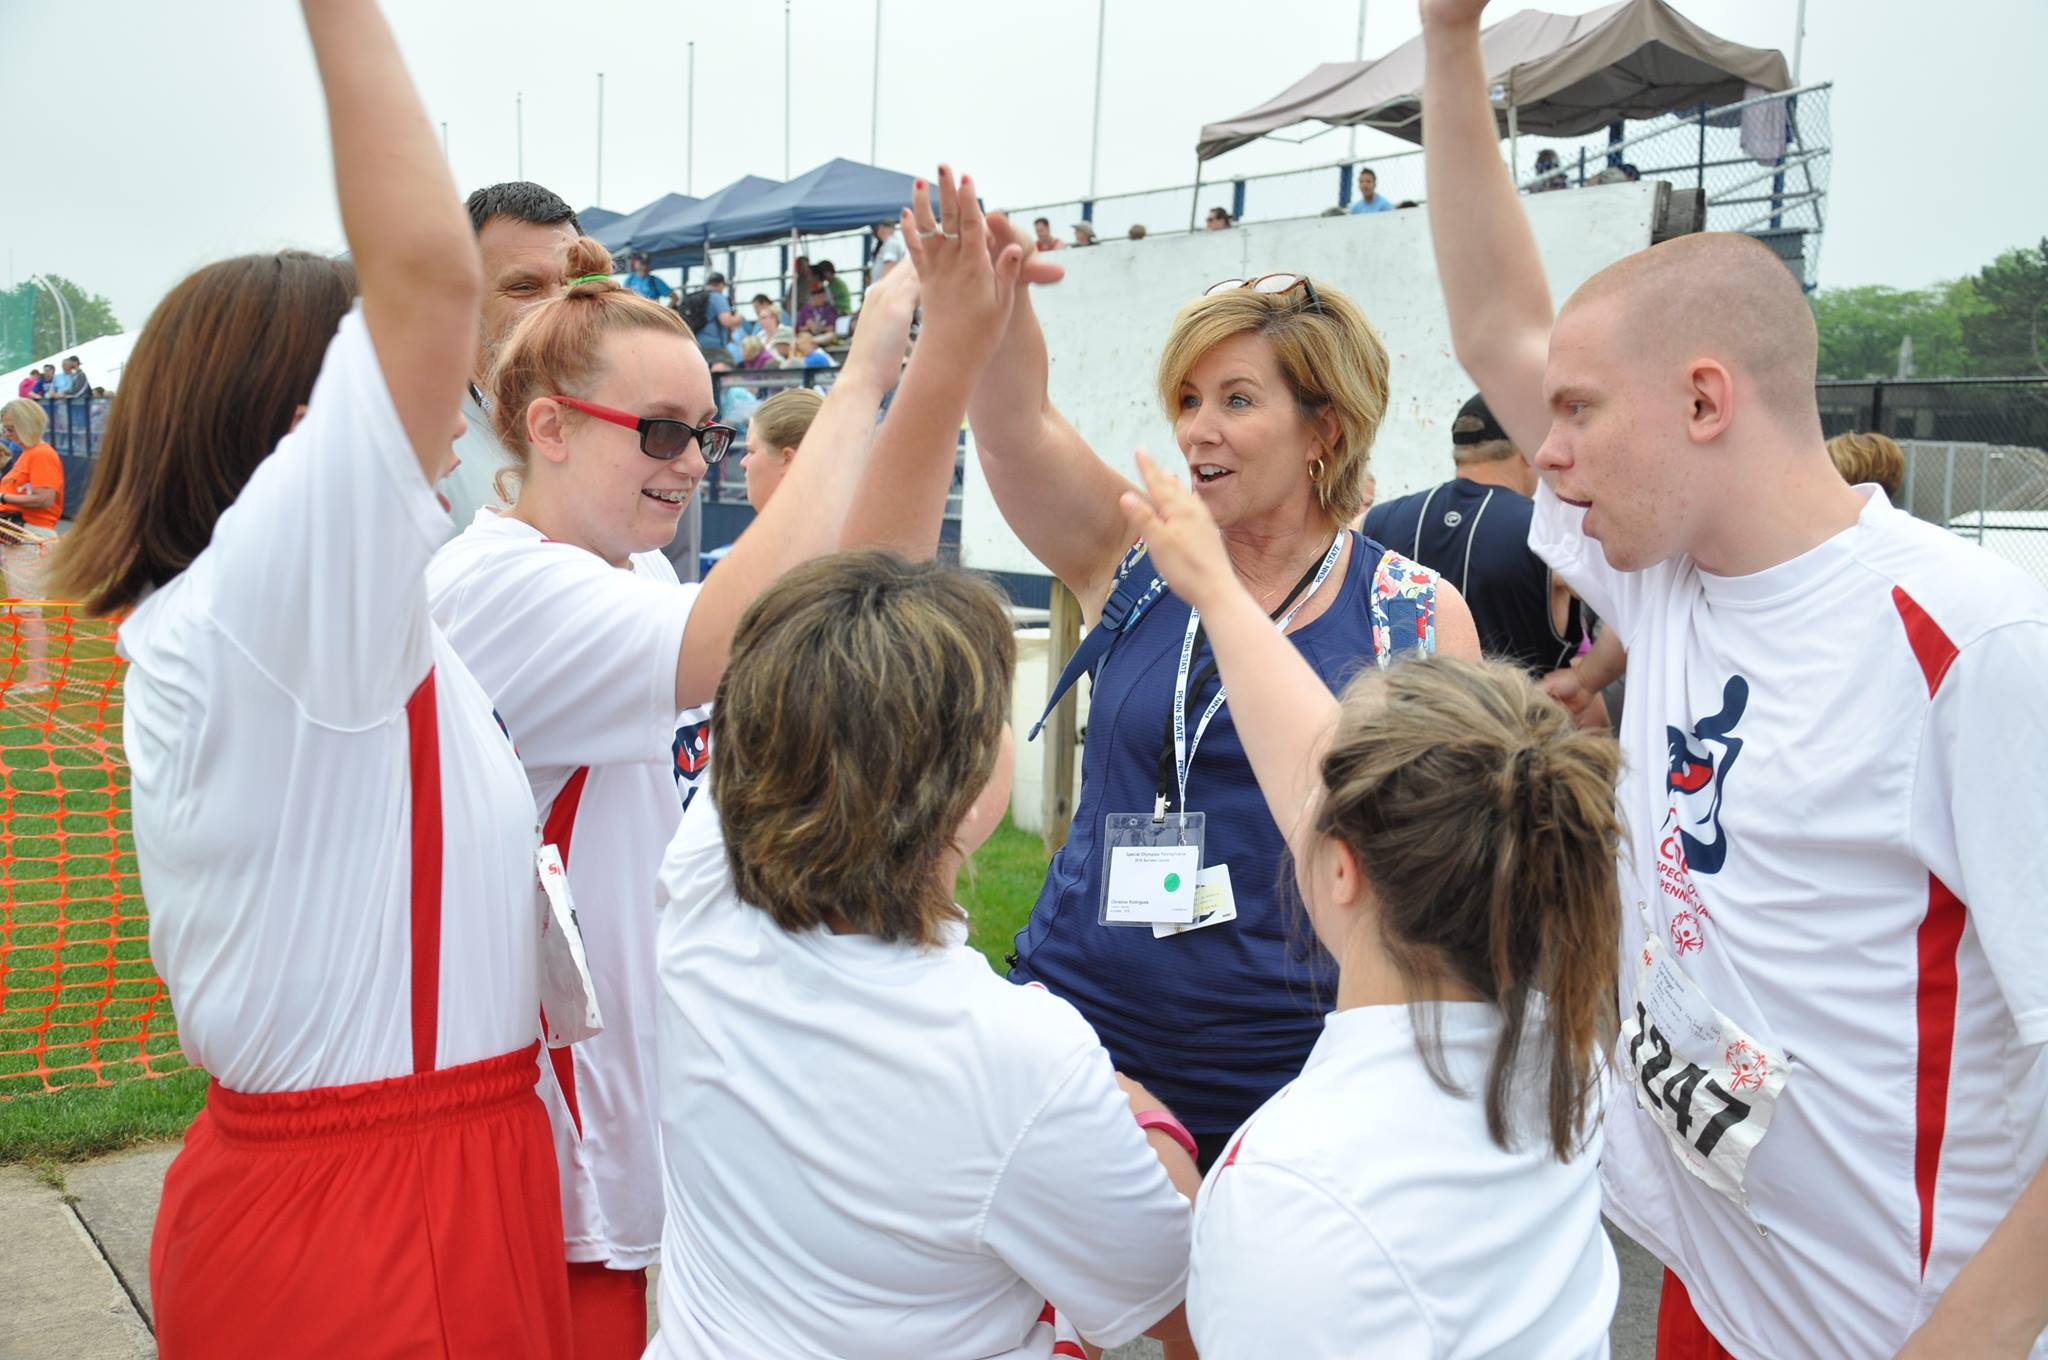 YMCA of Greater Brandywine to Host Team Pennsylvania as It Prepares for Special Olympics USA